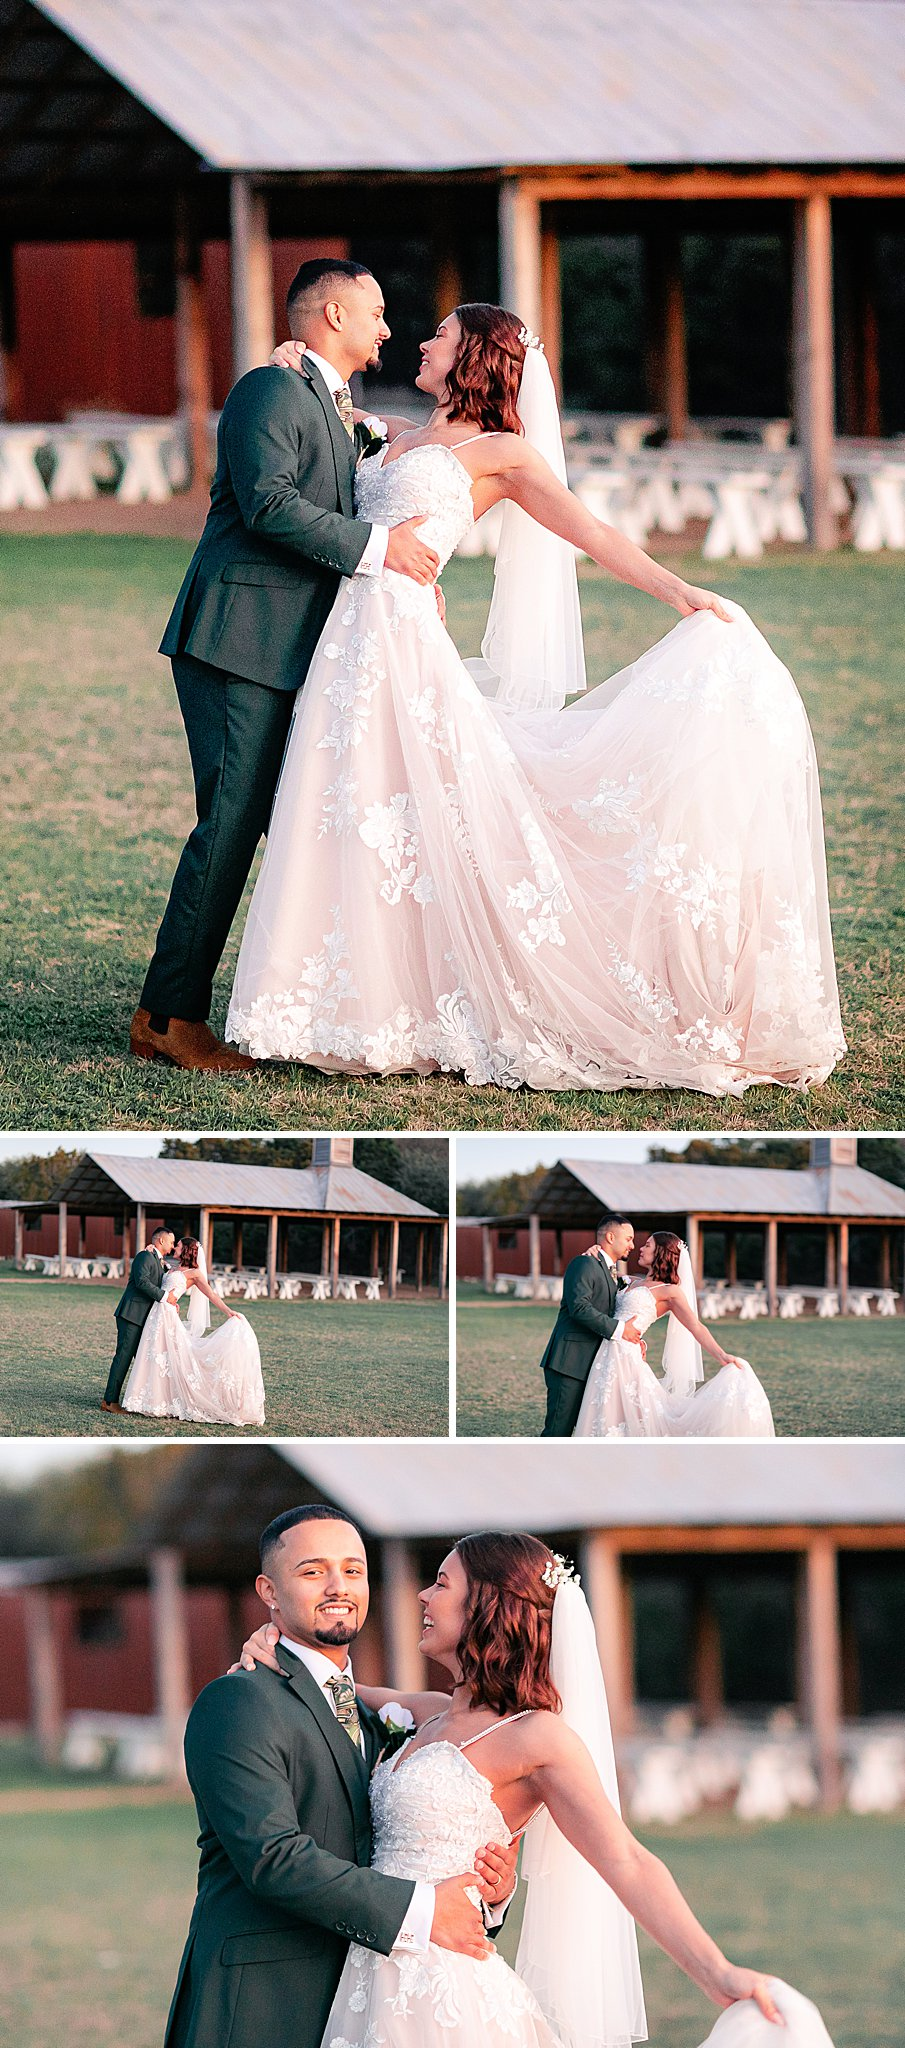 Carly-Barton-Photography-Texas-Wedding-Photographer-Western-Sky-Wedding-Event-Venue-Emerald-Green-Theme_0088.jpg